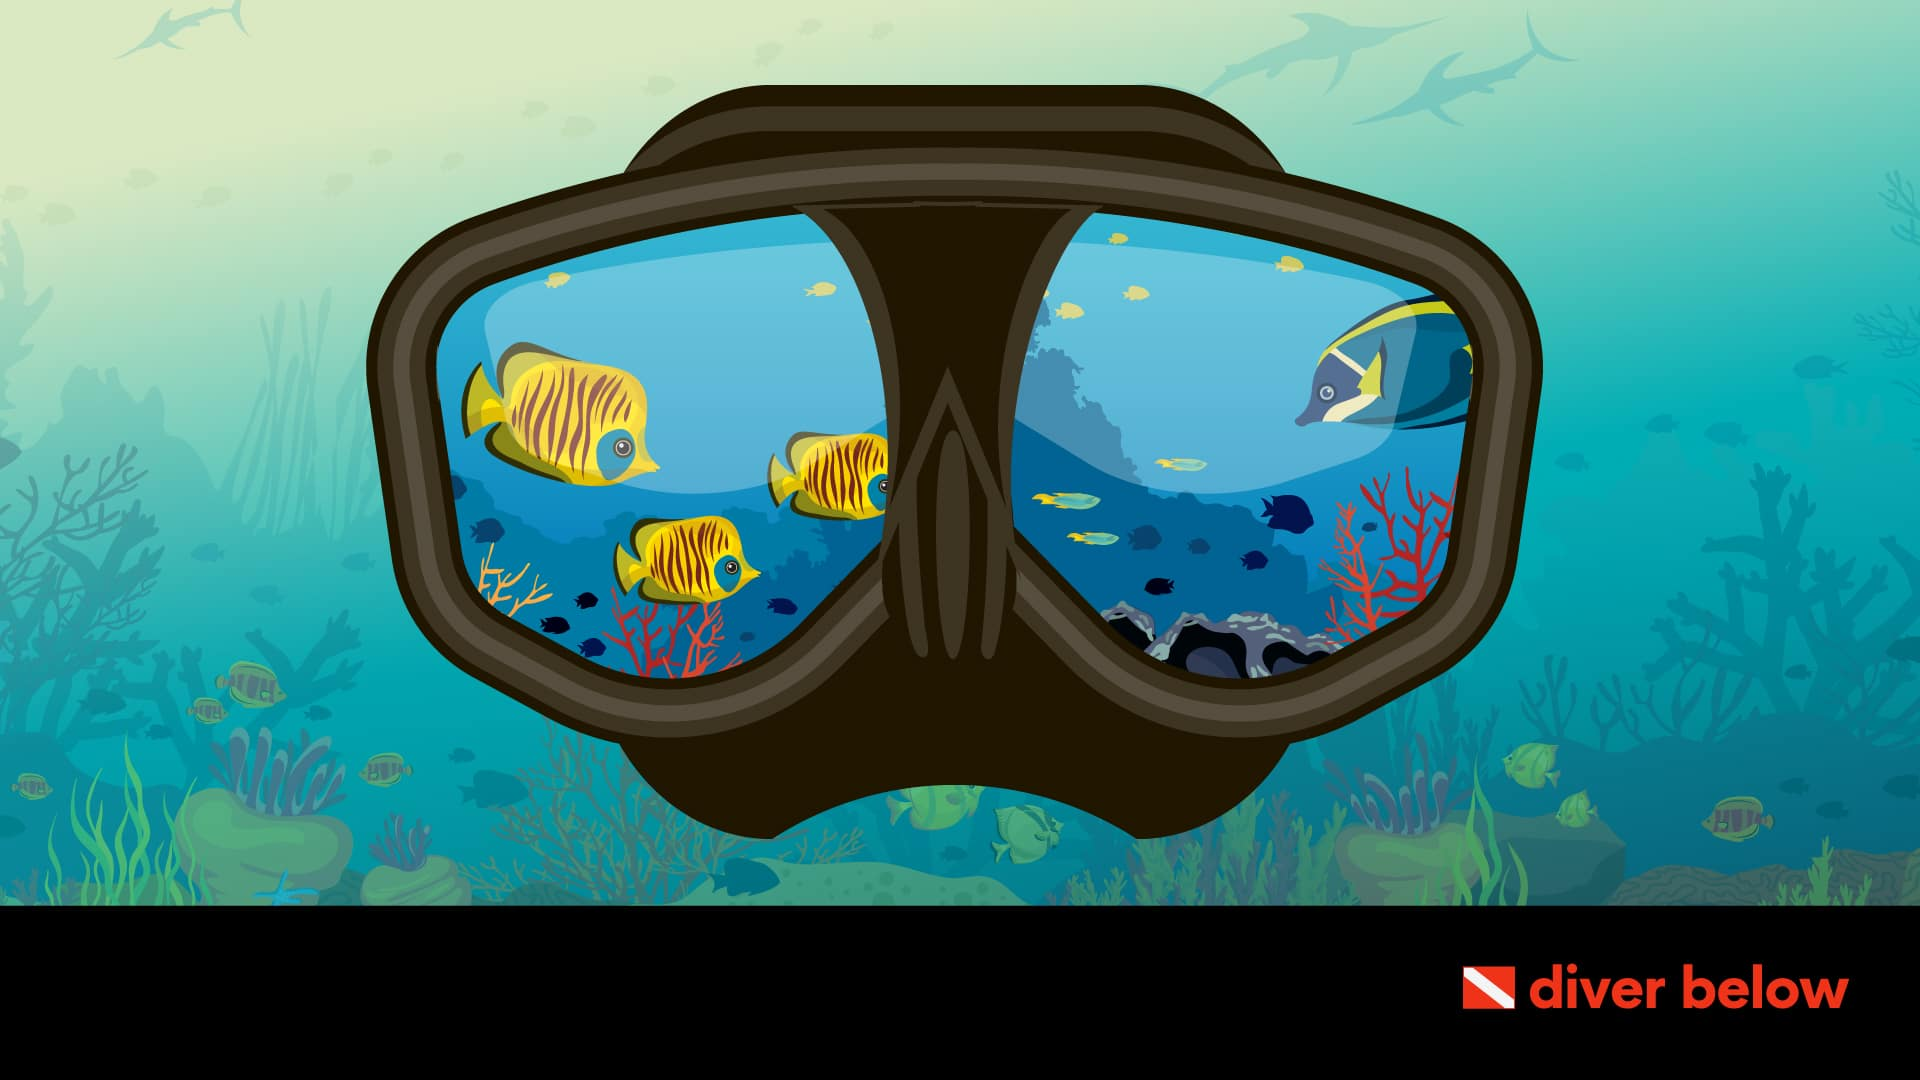 vector graphic showing a scuba mask underwater with fish swimming on the lenses